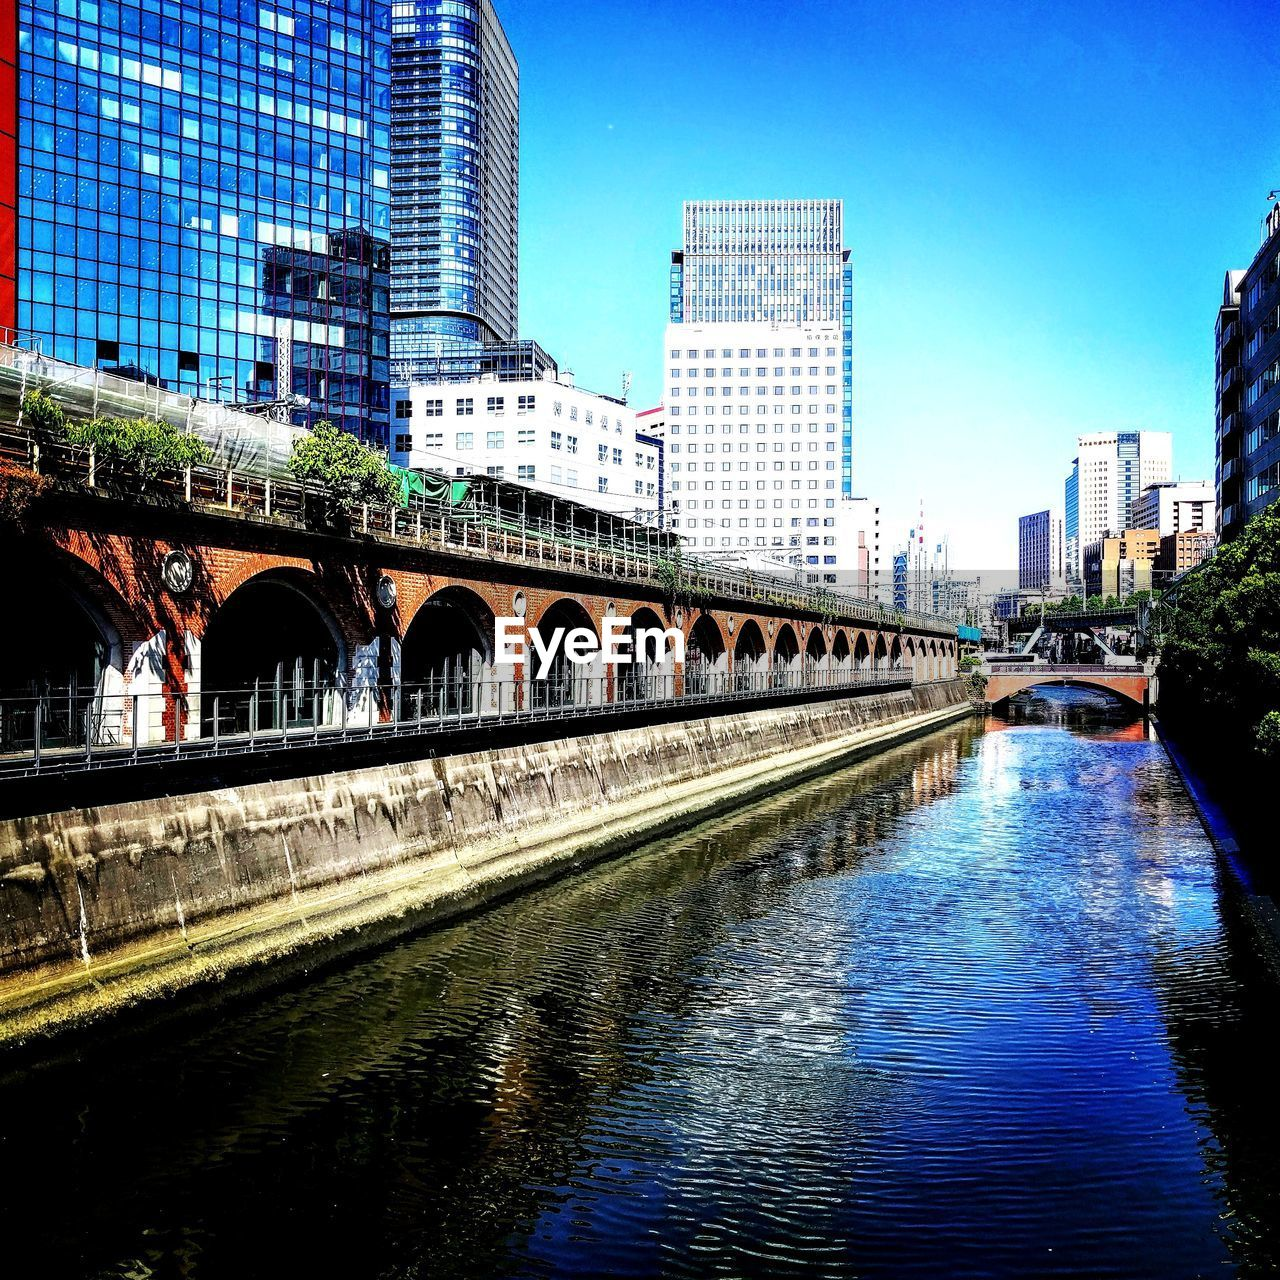 architecture, connection, built structure, bridge - man made structure, city, water, building exterior, reflection, skyscraper, waterfront, modern, blue, river, transportation, outdoors, clear sky, day, sky, no people, cityscape